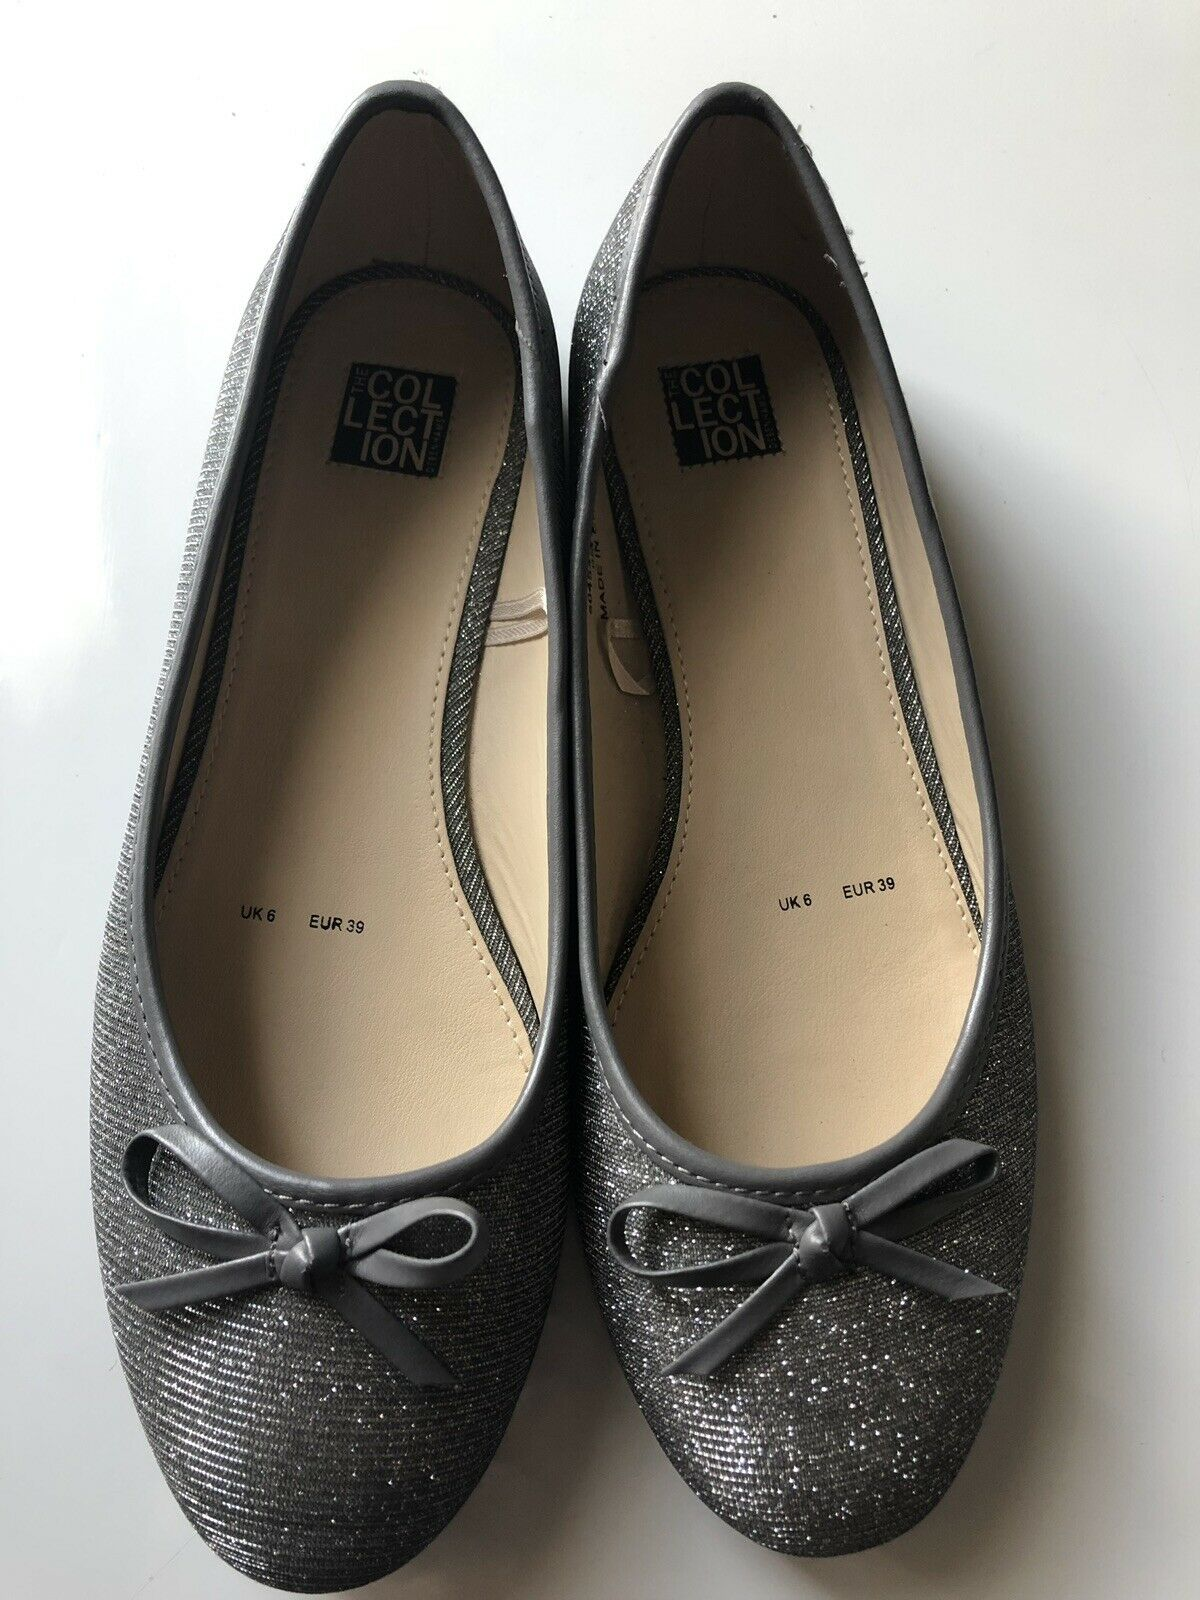 Kenneth Cole Silver Glitter Ballets UK6 Worn Once (inside house mainly)